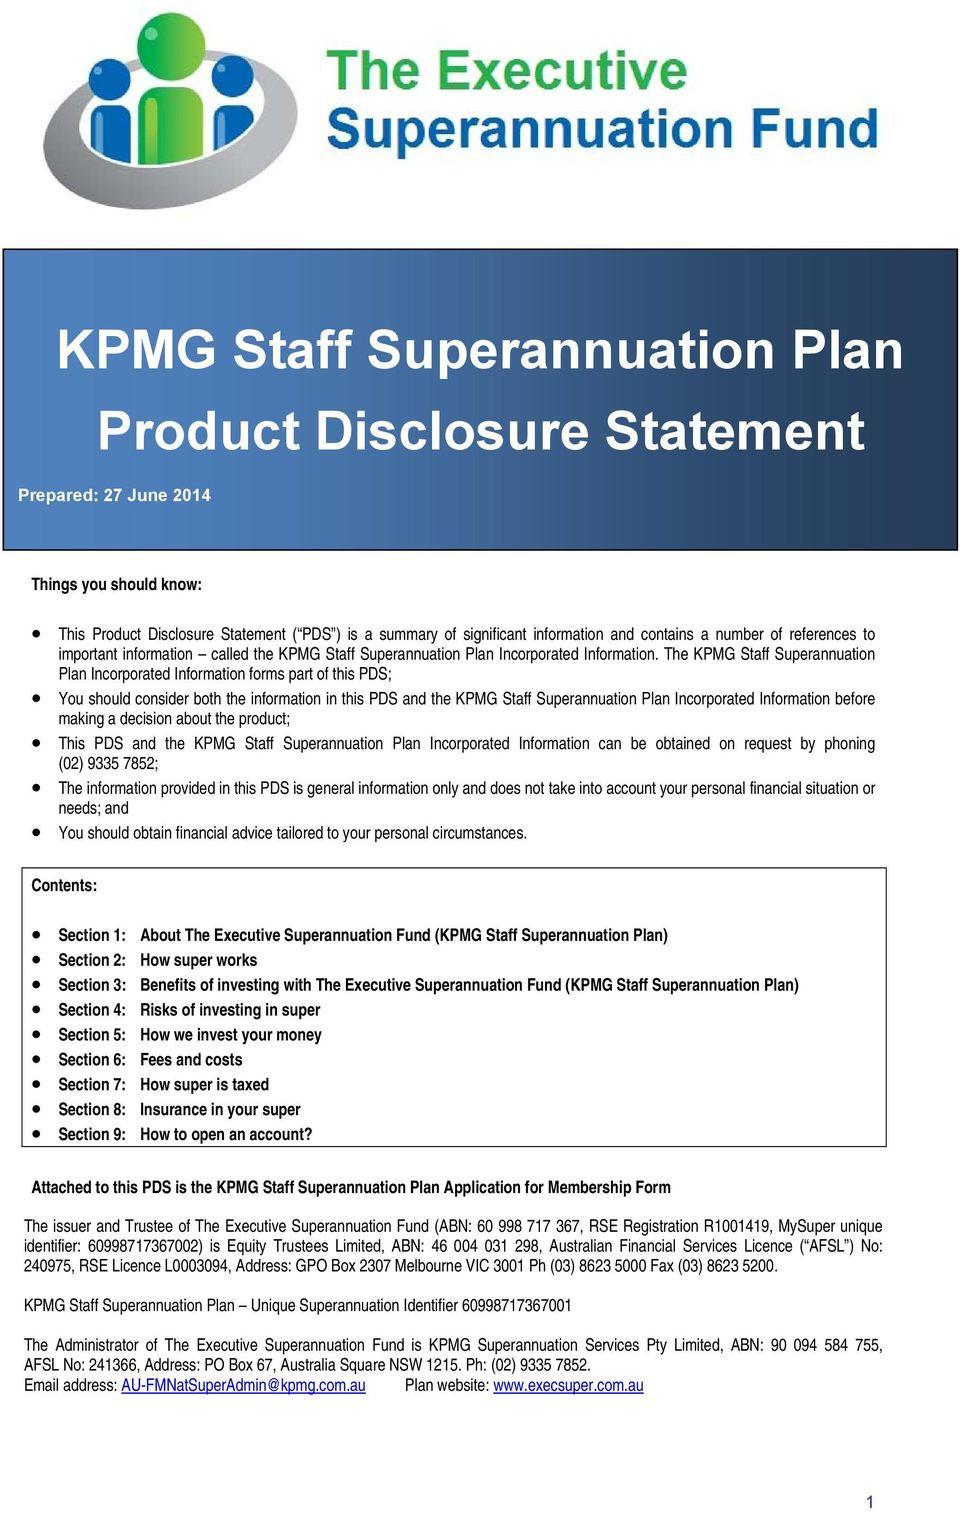 The KPMG Staff Superannuation Plan Incorporated Information forms part of this PDS; You should consider both the information in this PDS and the KPMG Staff Superannuation Plan Incorporated